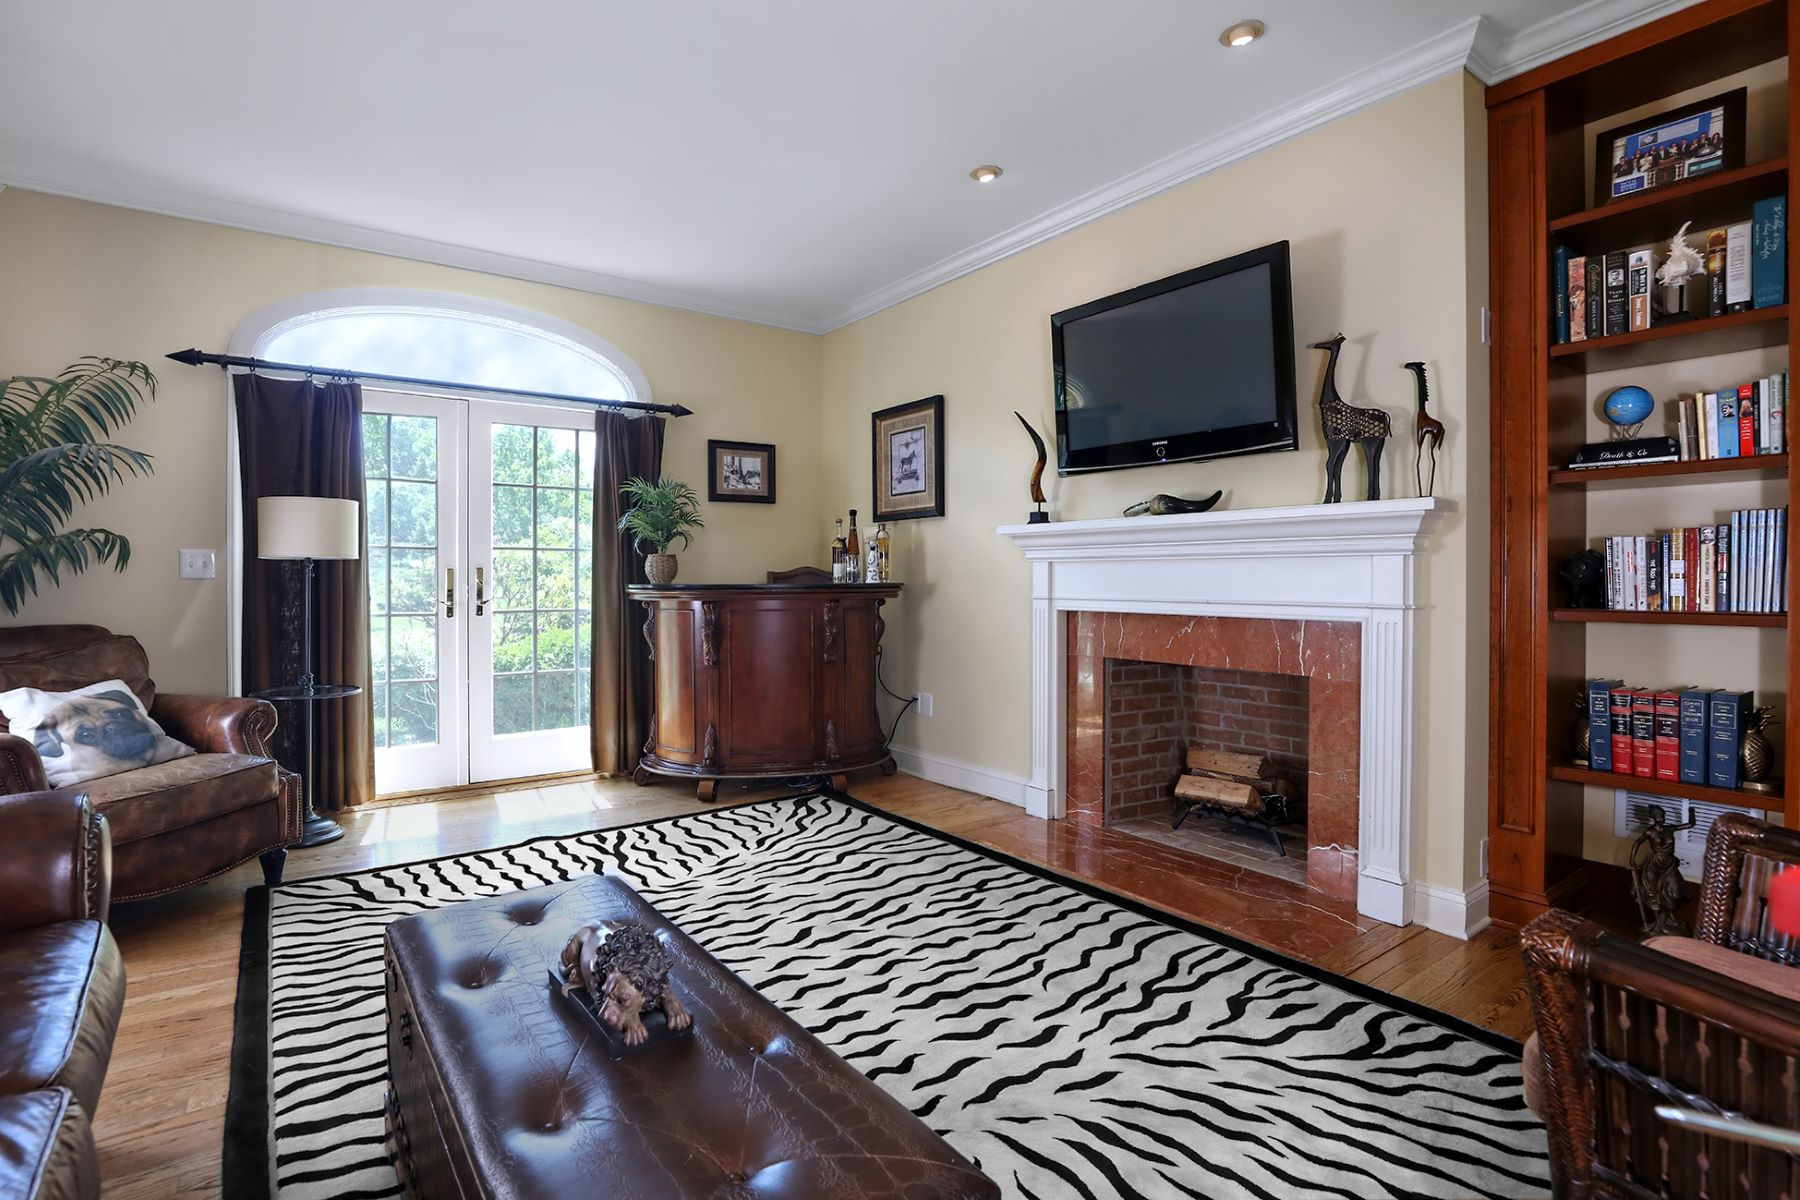 Additional photo for property listing at Elegant and Stately In A Serene Setting 56 High Ridge Road, Skillman, Νιου Τζερσεϋ 08558 Ηνωμένες Πολιτείες